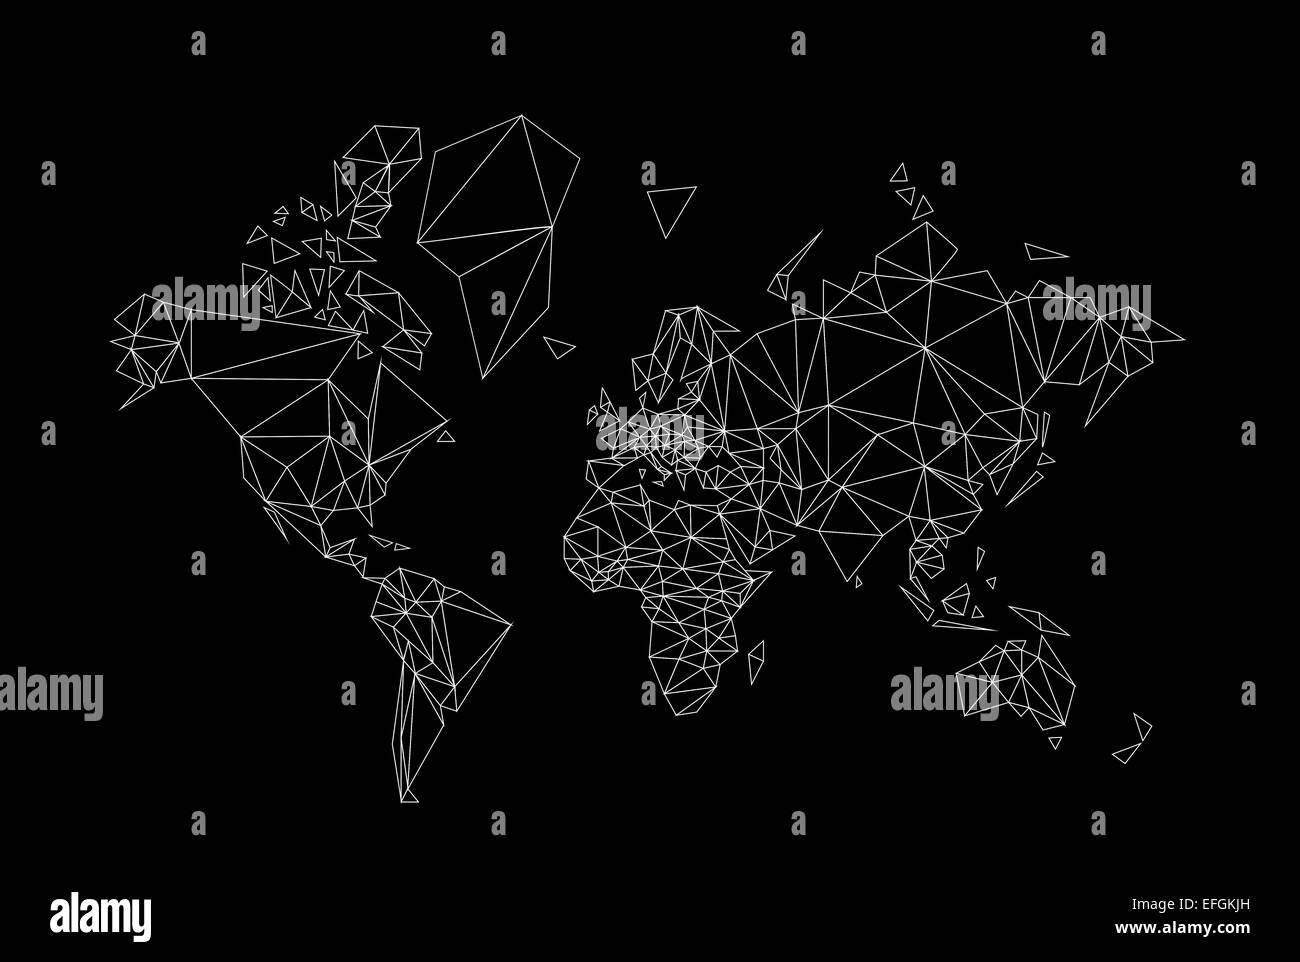 World map vector black images map of world clipart world map image file world map wikipedia gumiabroncs